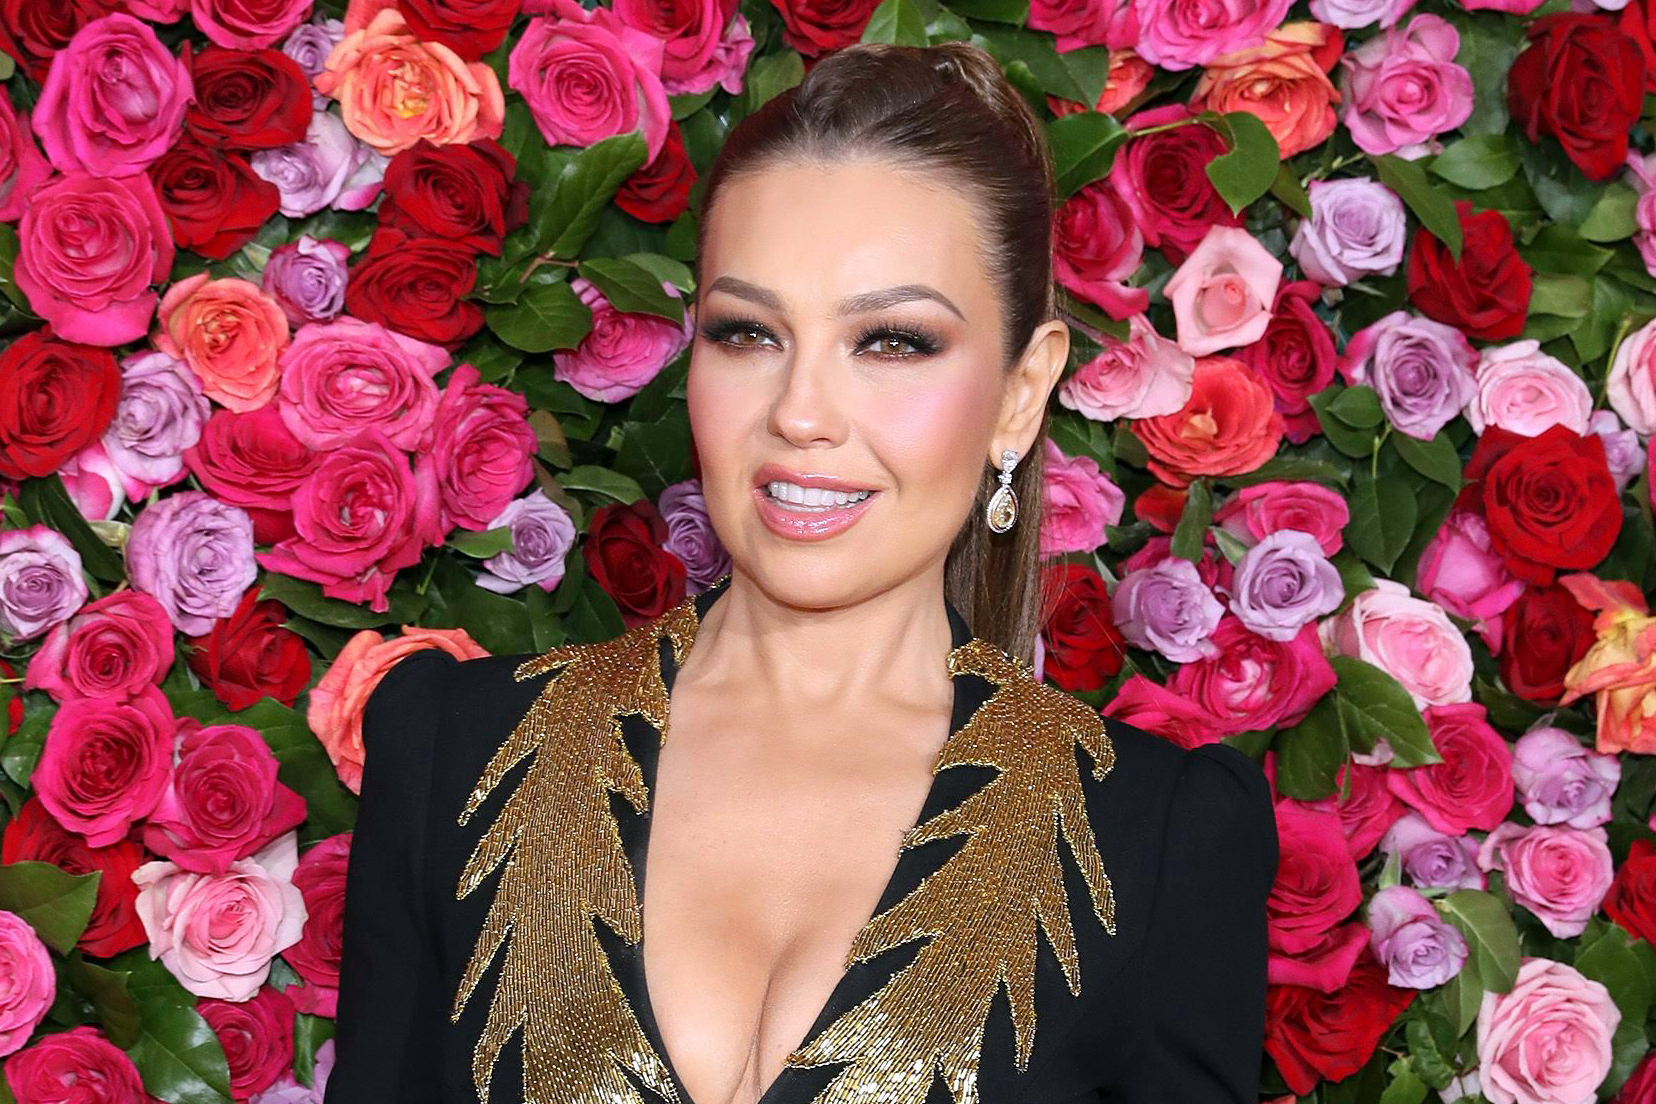 Amor A La Mexicana Movie thalia on new lp 'valiente,' embracing girl power, growing